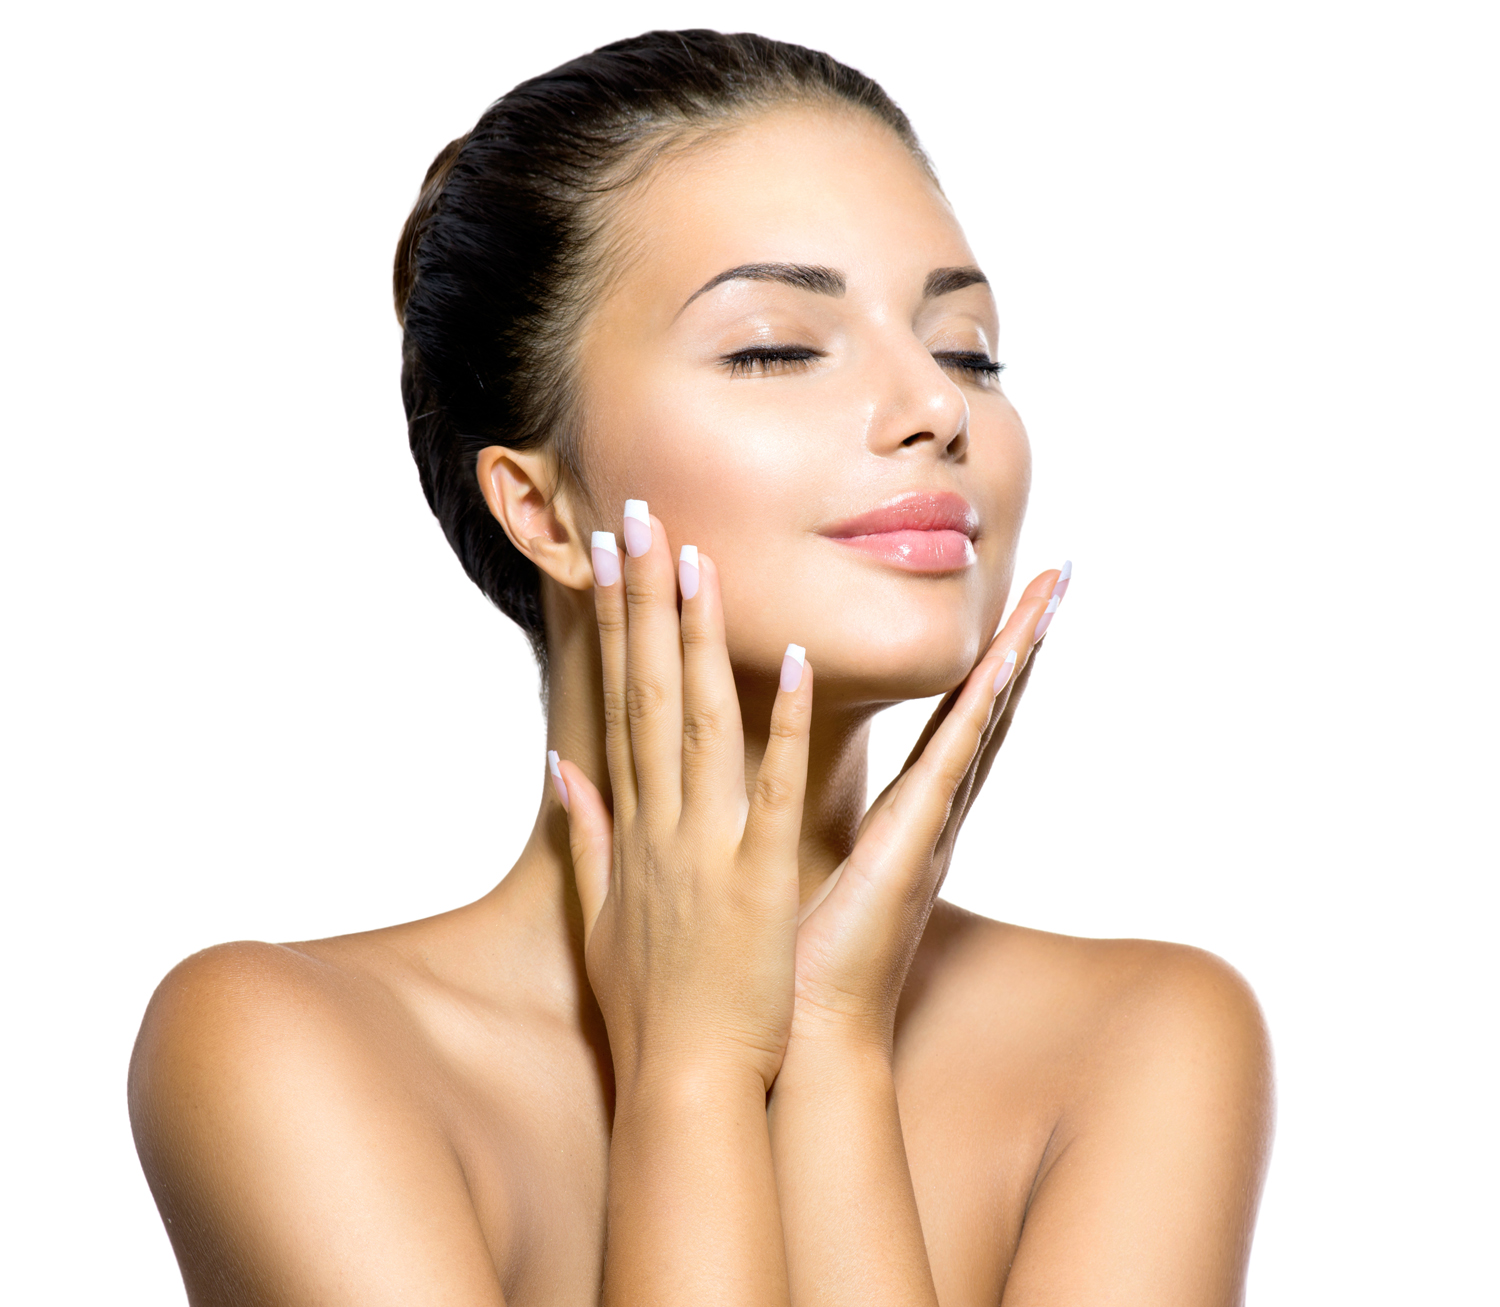 skin-care-services-in-palm-beach